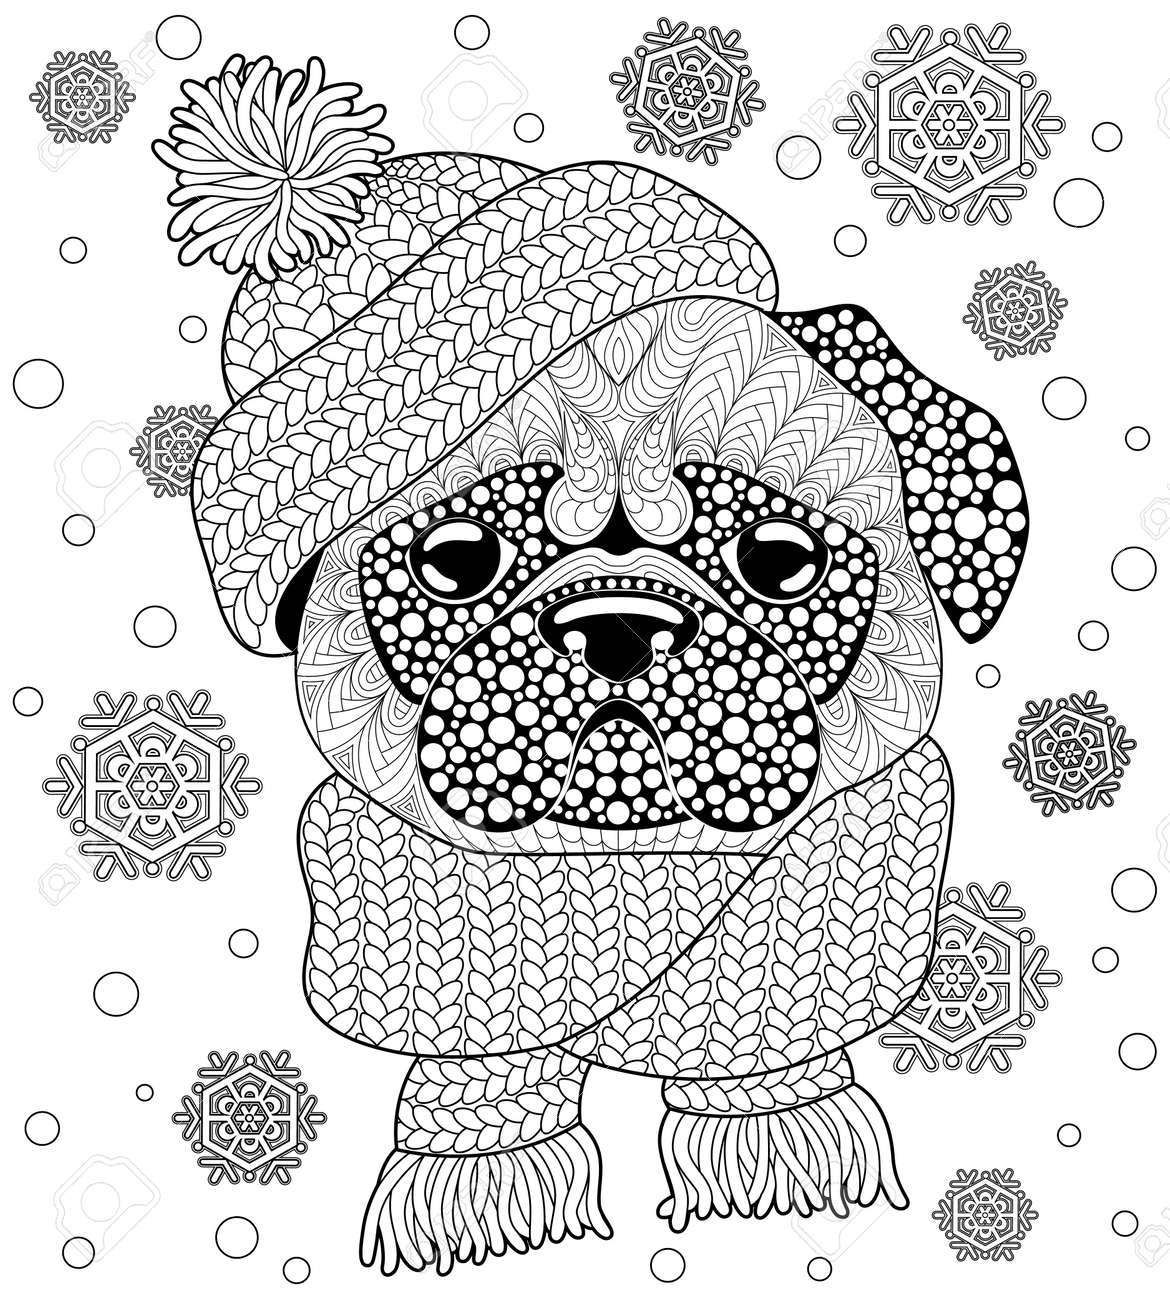 Tattoo or adult antistress coloring page black